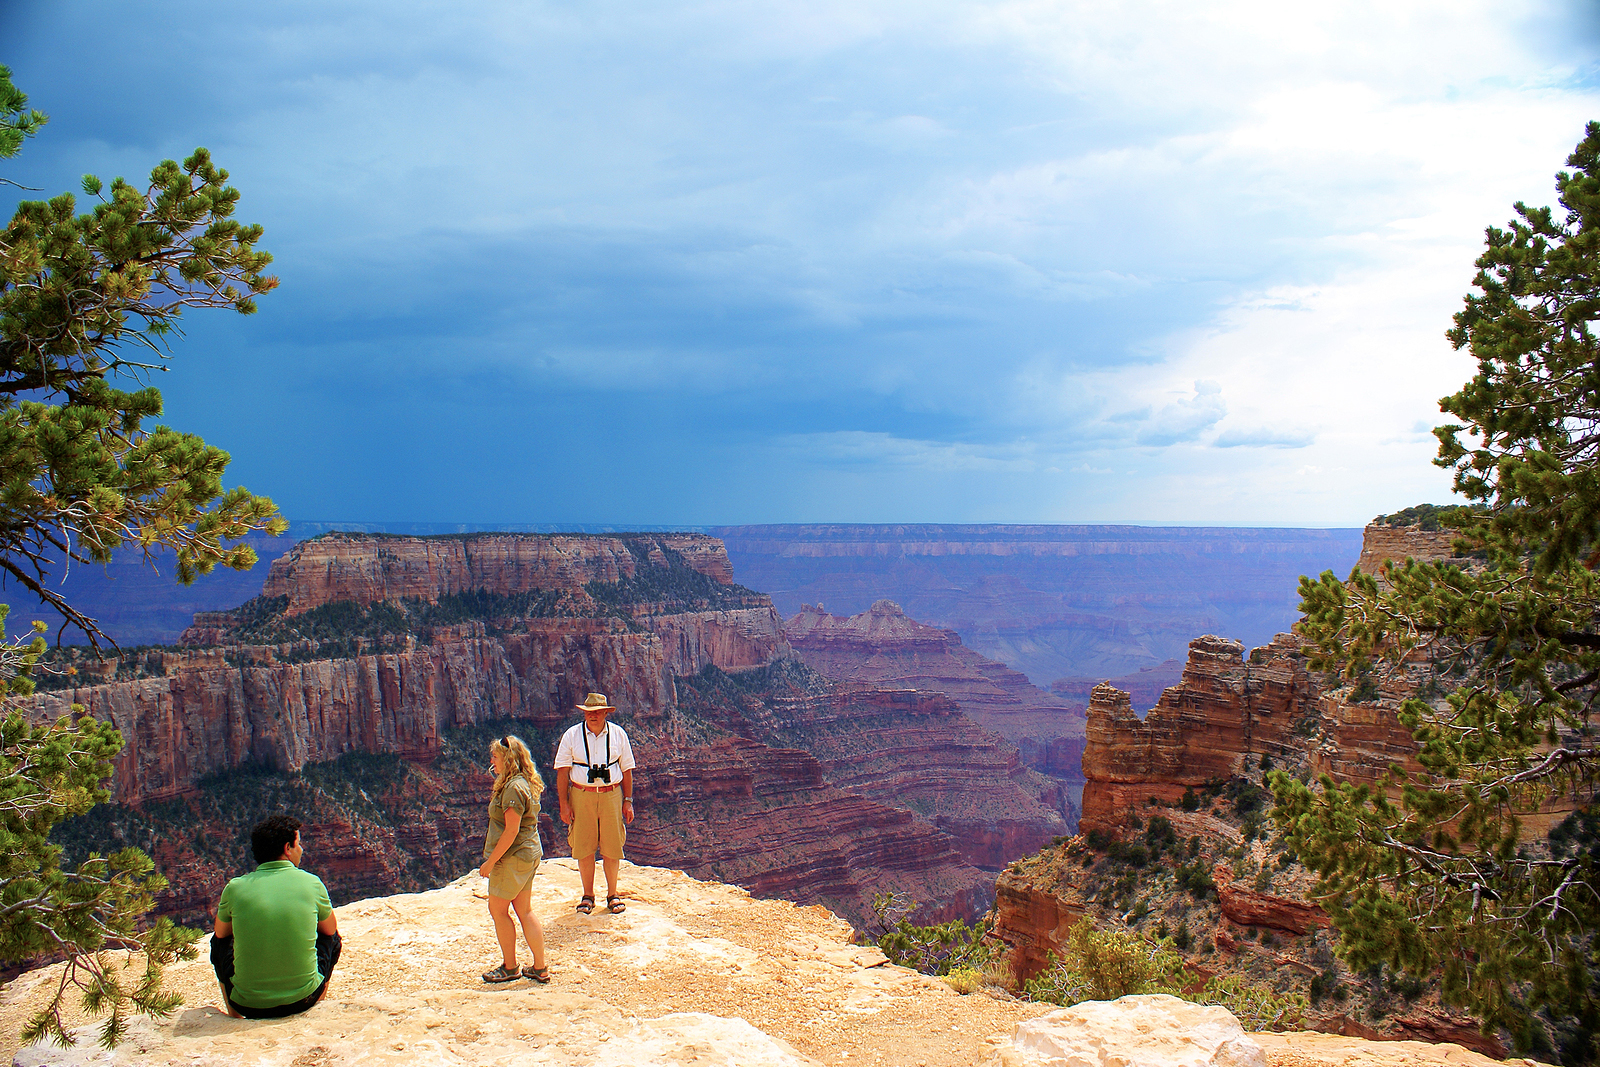 The Grand Canyon in Arizona is just one great vacation spot for the whole family.